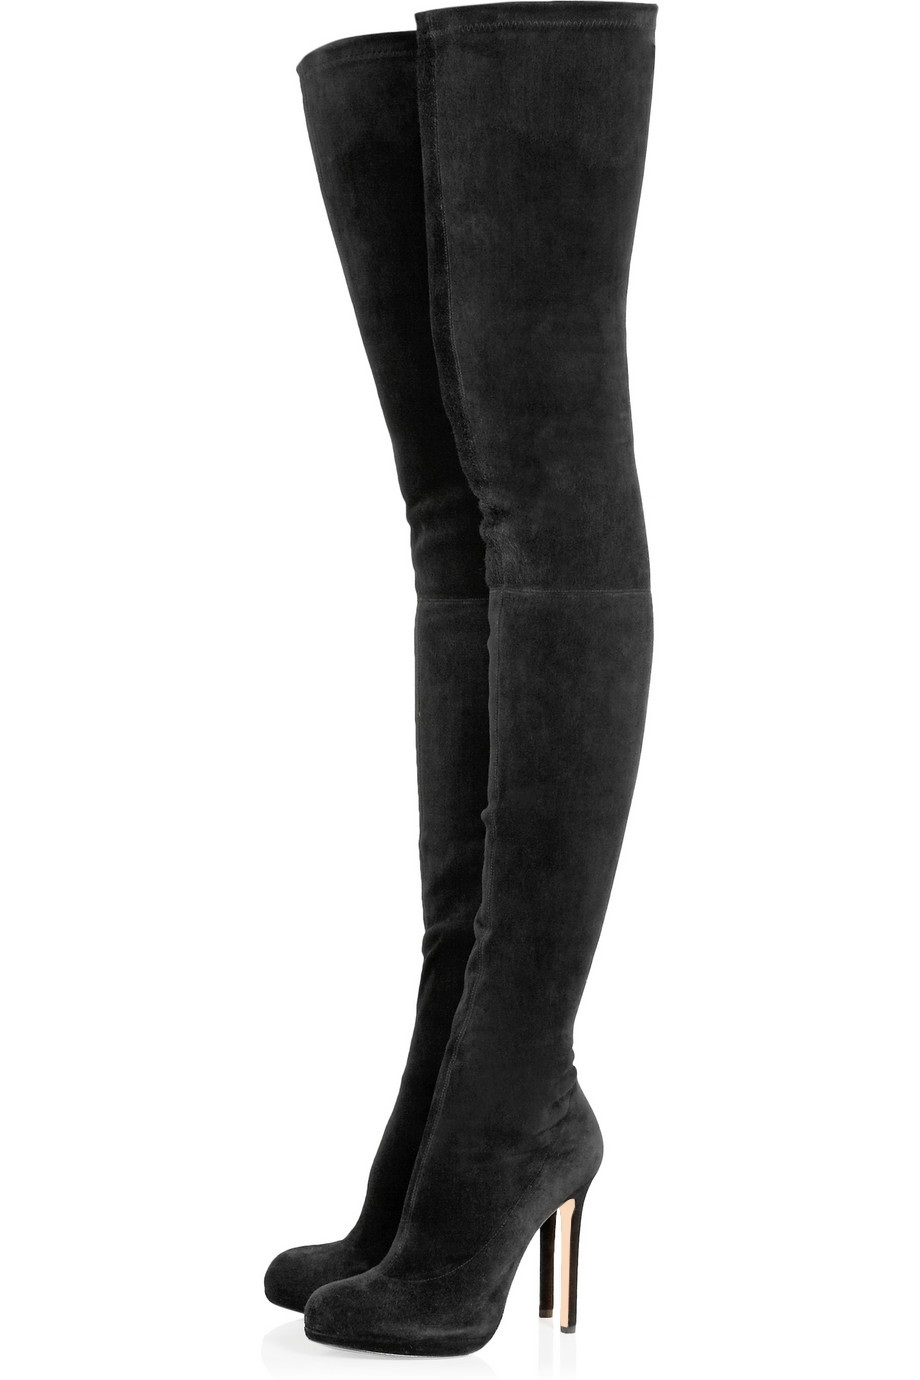 Boldees Fancy Women Black Stretch Suede Over the Knee Thigh High Boots Ladies Round Toe Platform High Heel Boots Sexy Tight Shoe stretch suede women thigh high boots stilettos sexy over the knee boots pointy toe high heel long boots botas